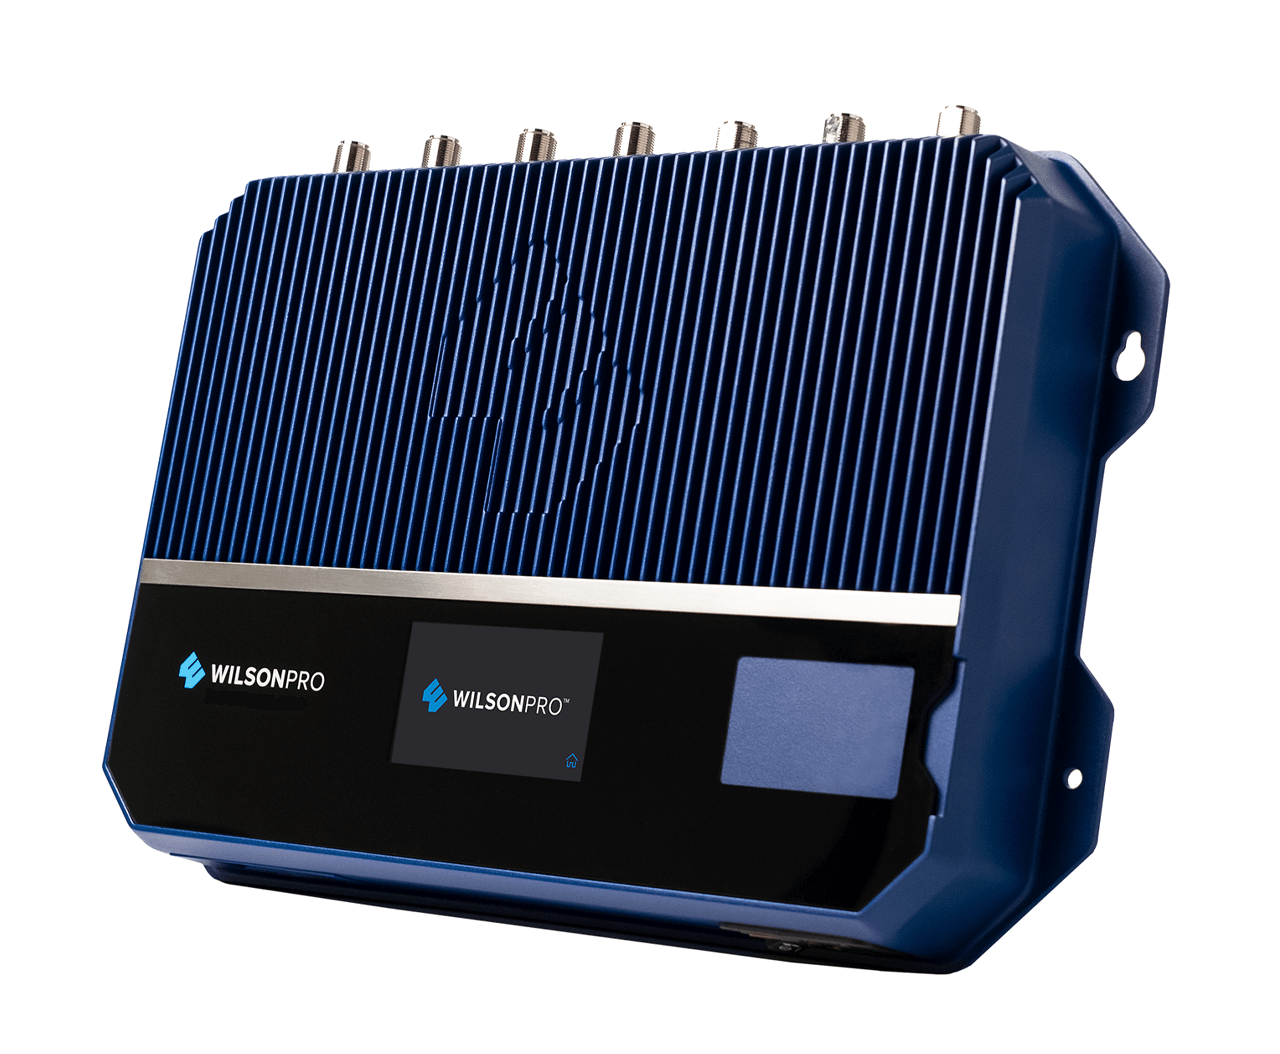 WilsonPro A8000 Commercial Signal Booster